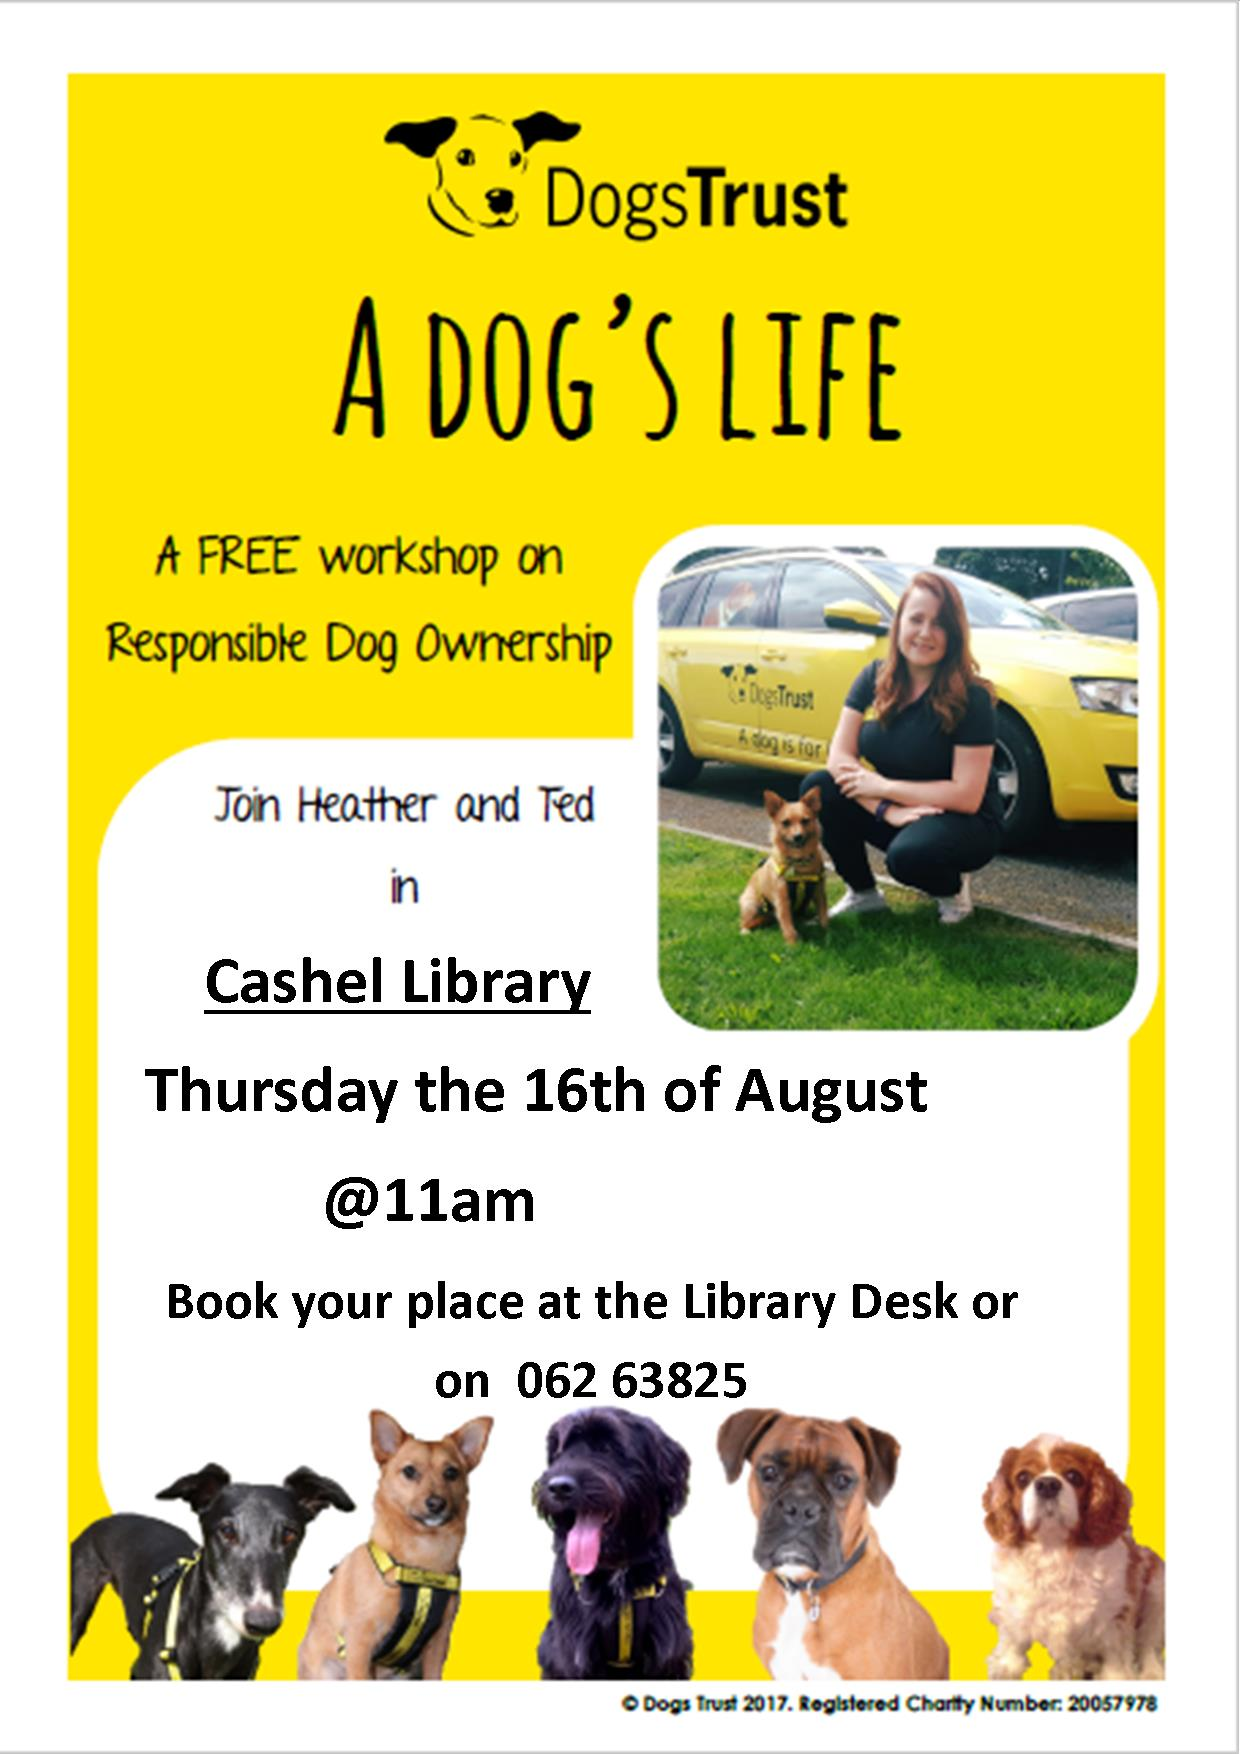 dogs trust poster 2018